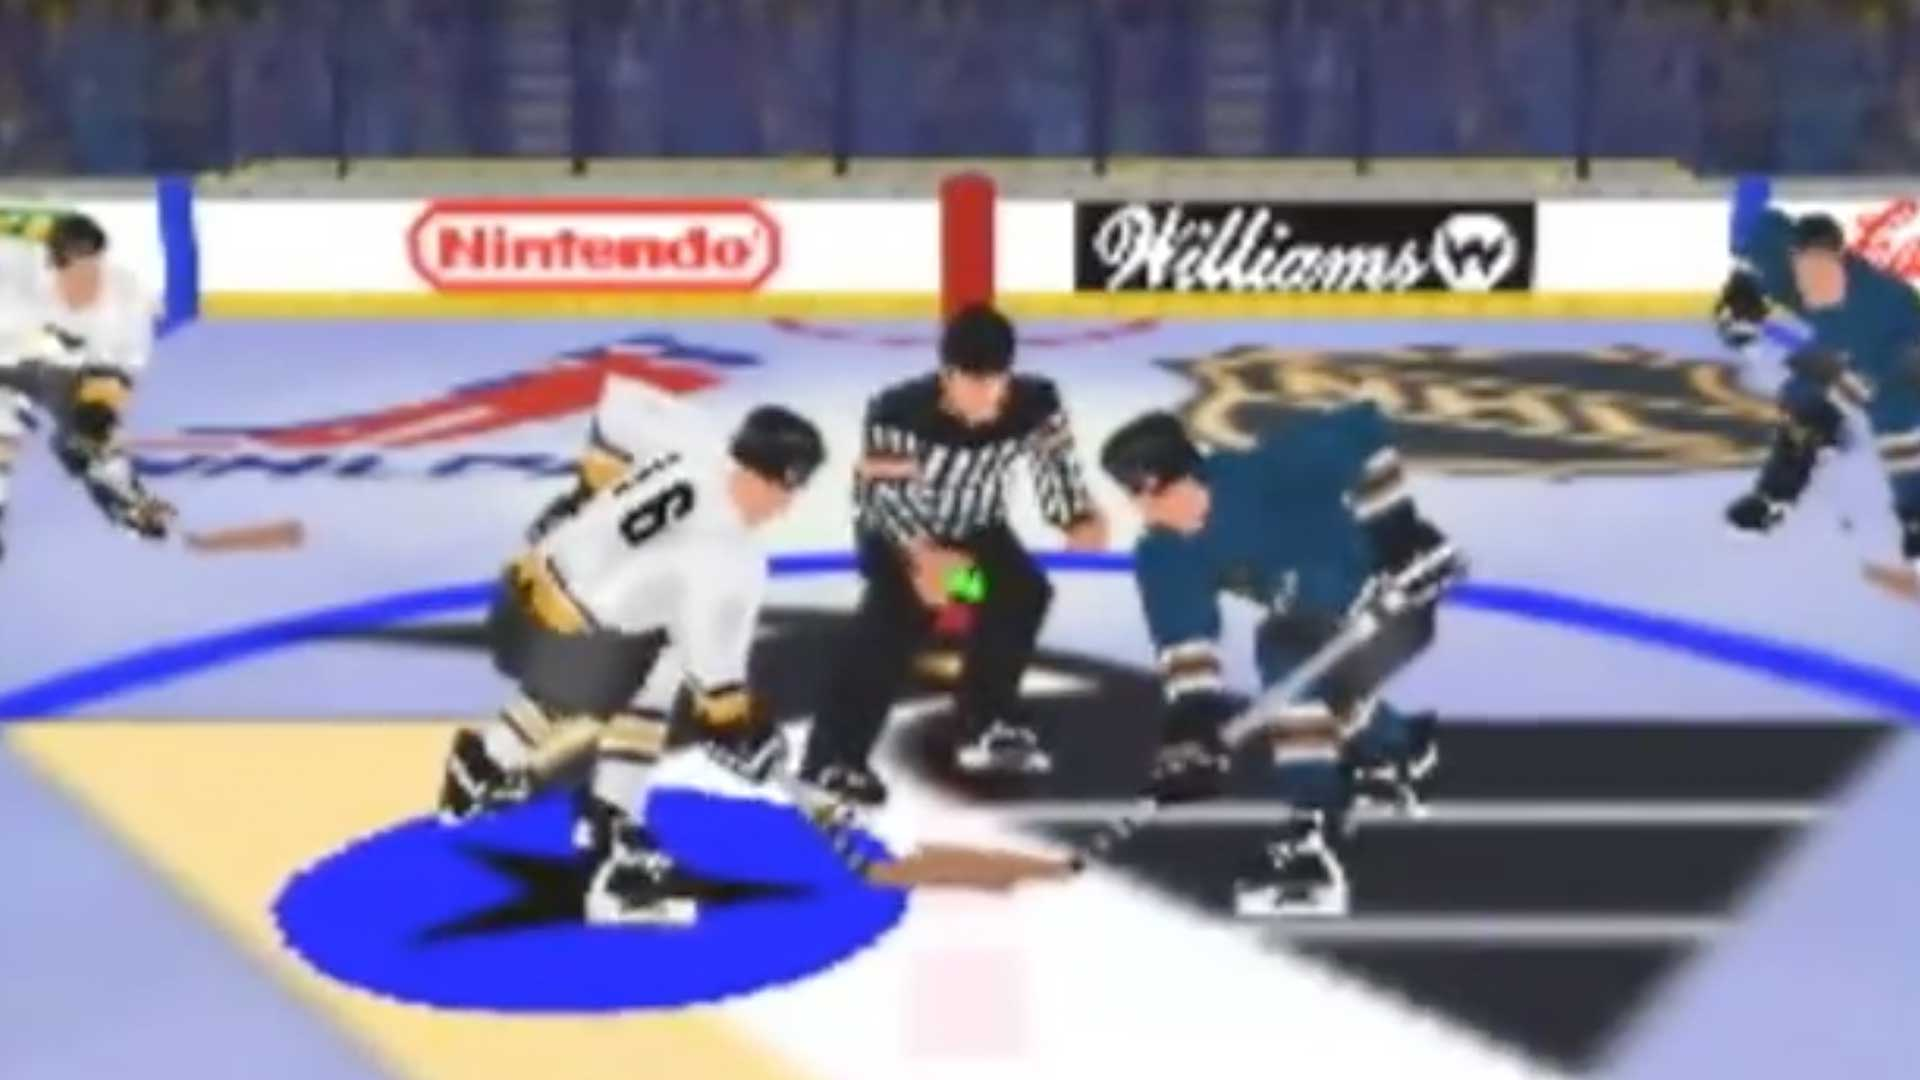 Minnesota-Wild-to-Trade-Entire-Roster-for-a-Copy-of-Wayne-Gretsky-Hockey-on-n64.jpg